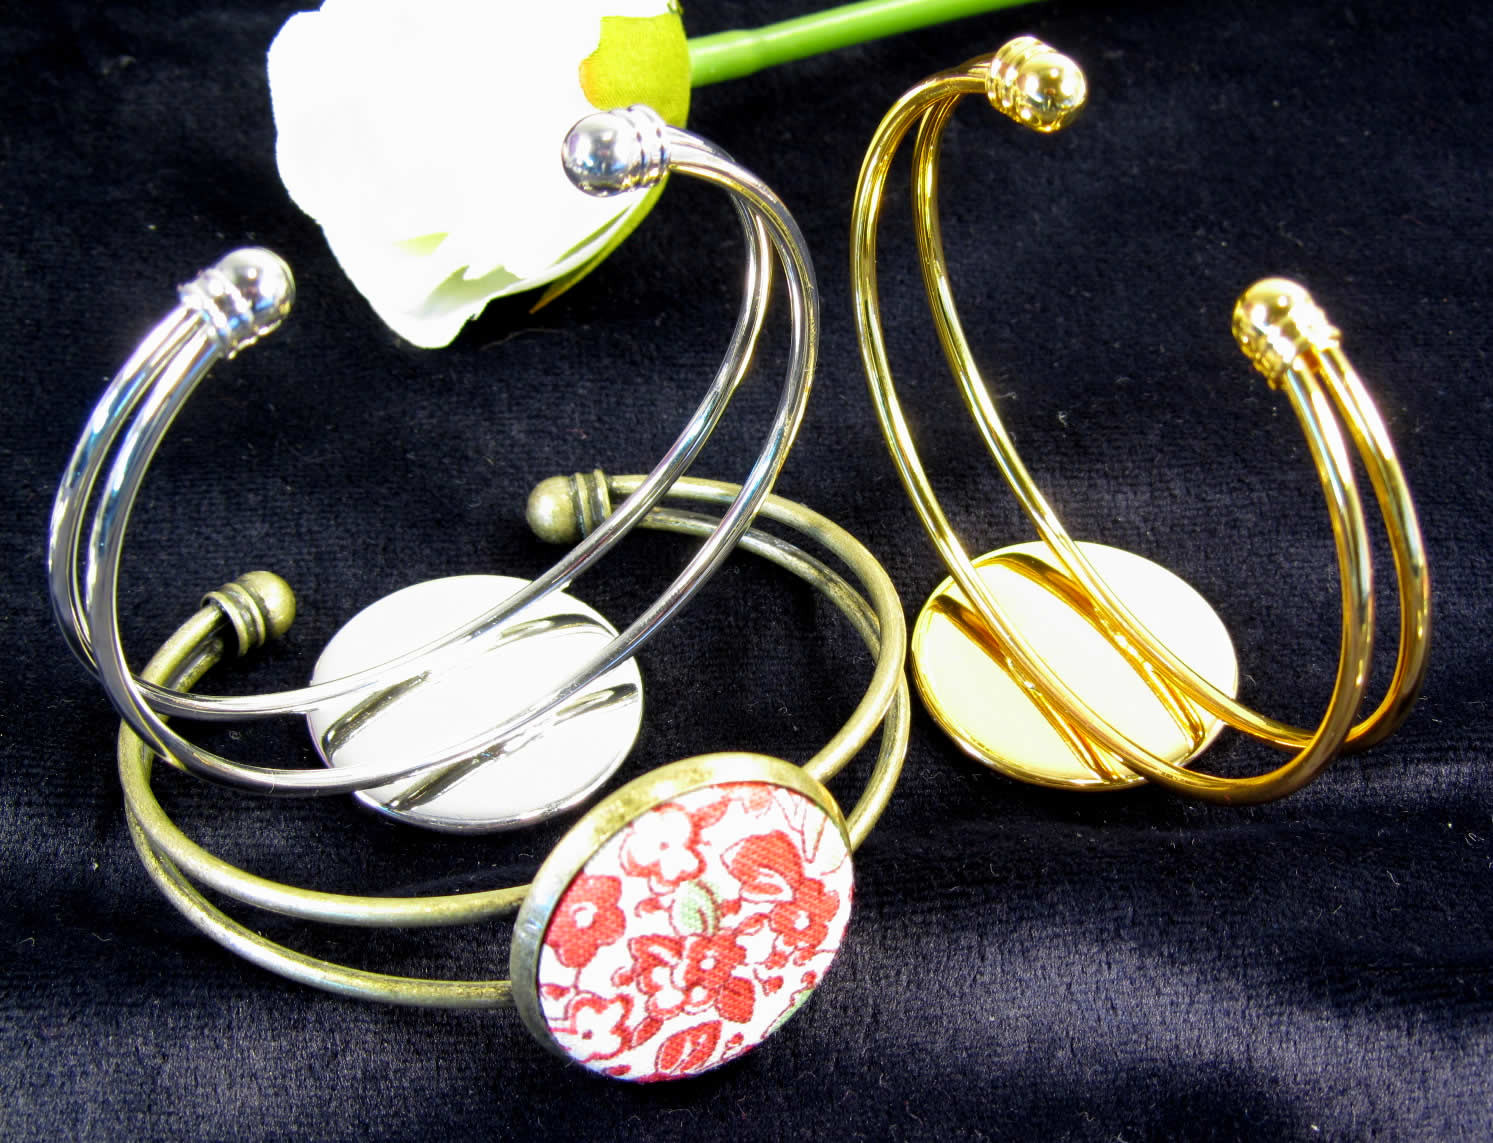 An elegant bracelet with a 25 mill cabochon mount, easily made using your badge machine